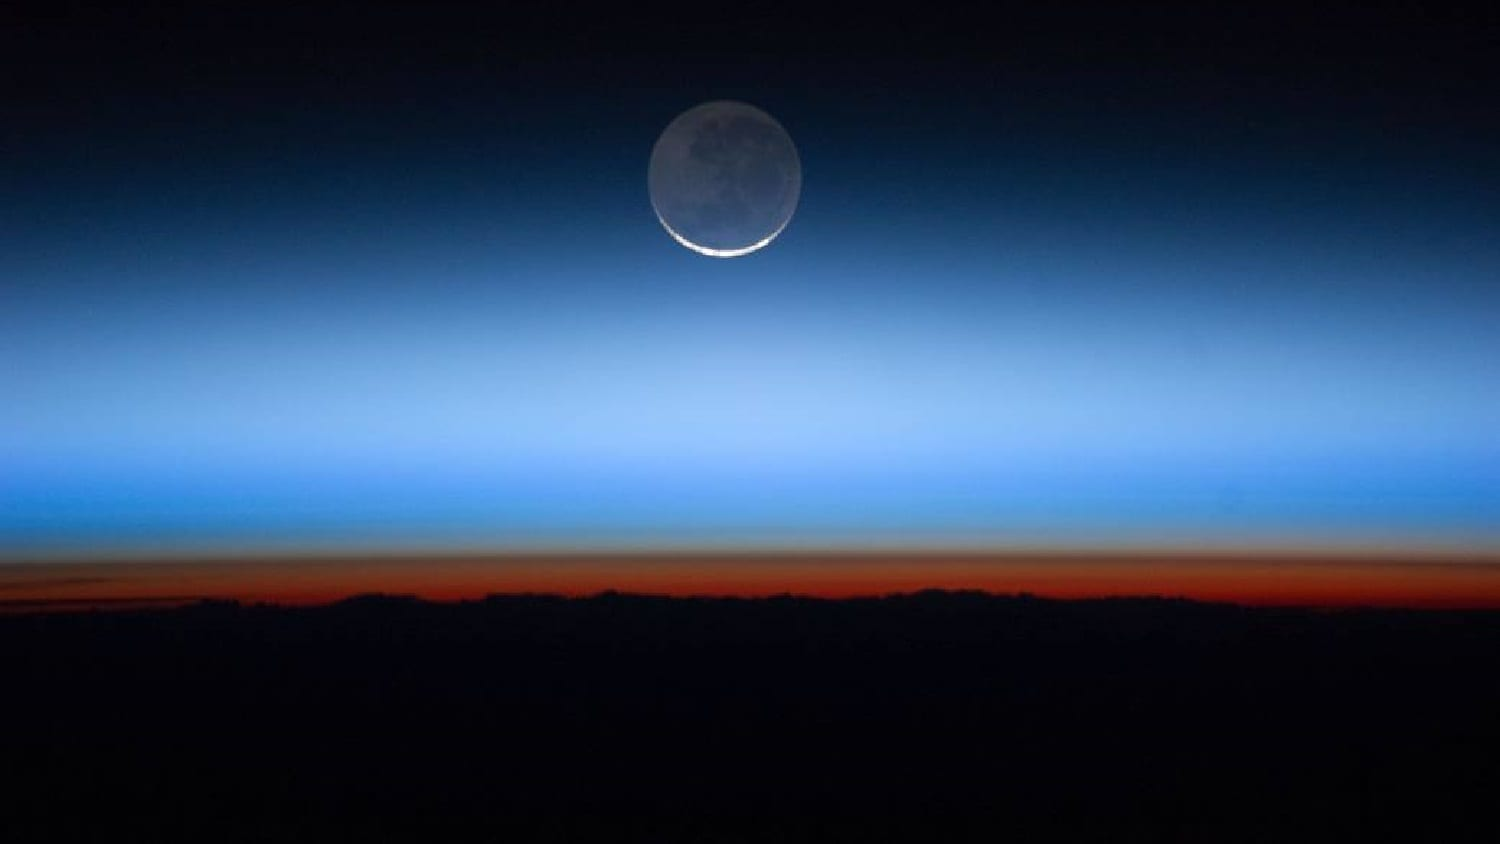 Earth's atmospheric layers at sunset from the ISS, photo credit: NASA